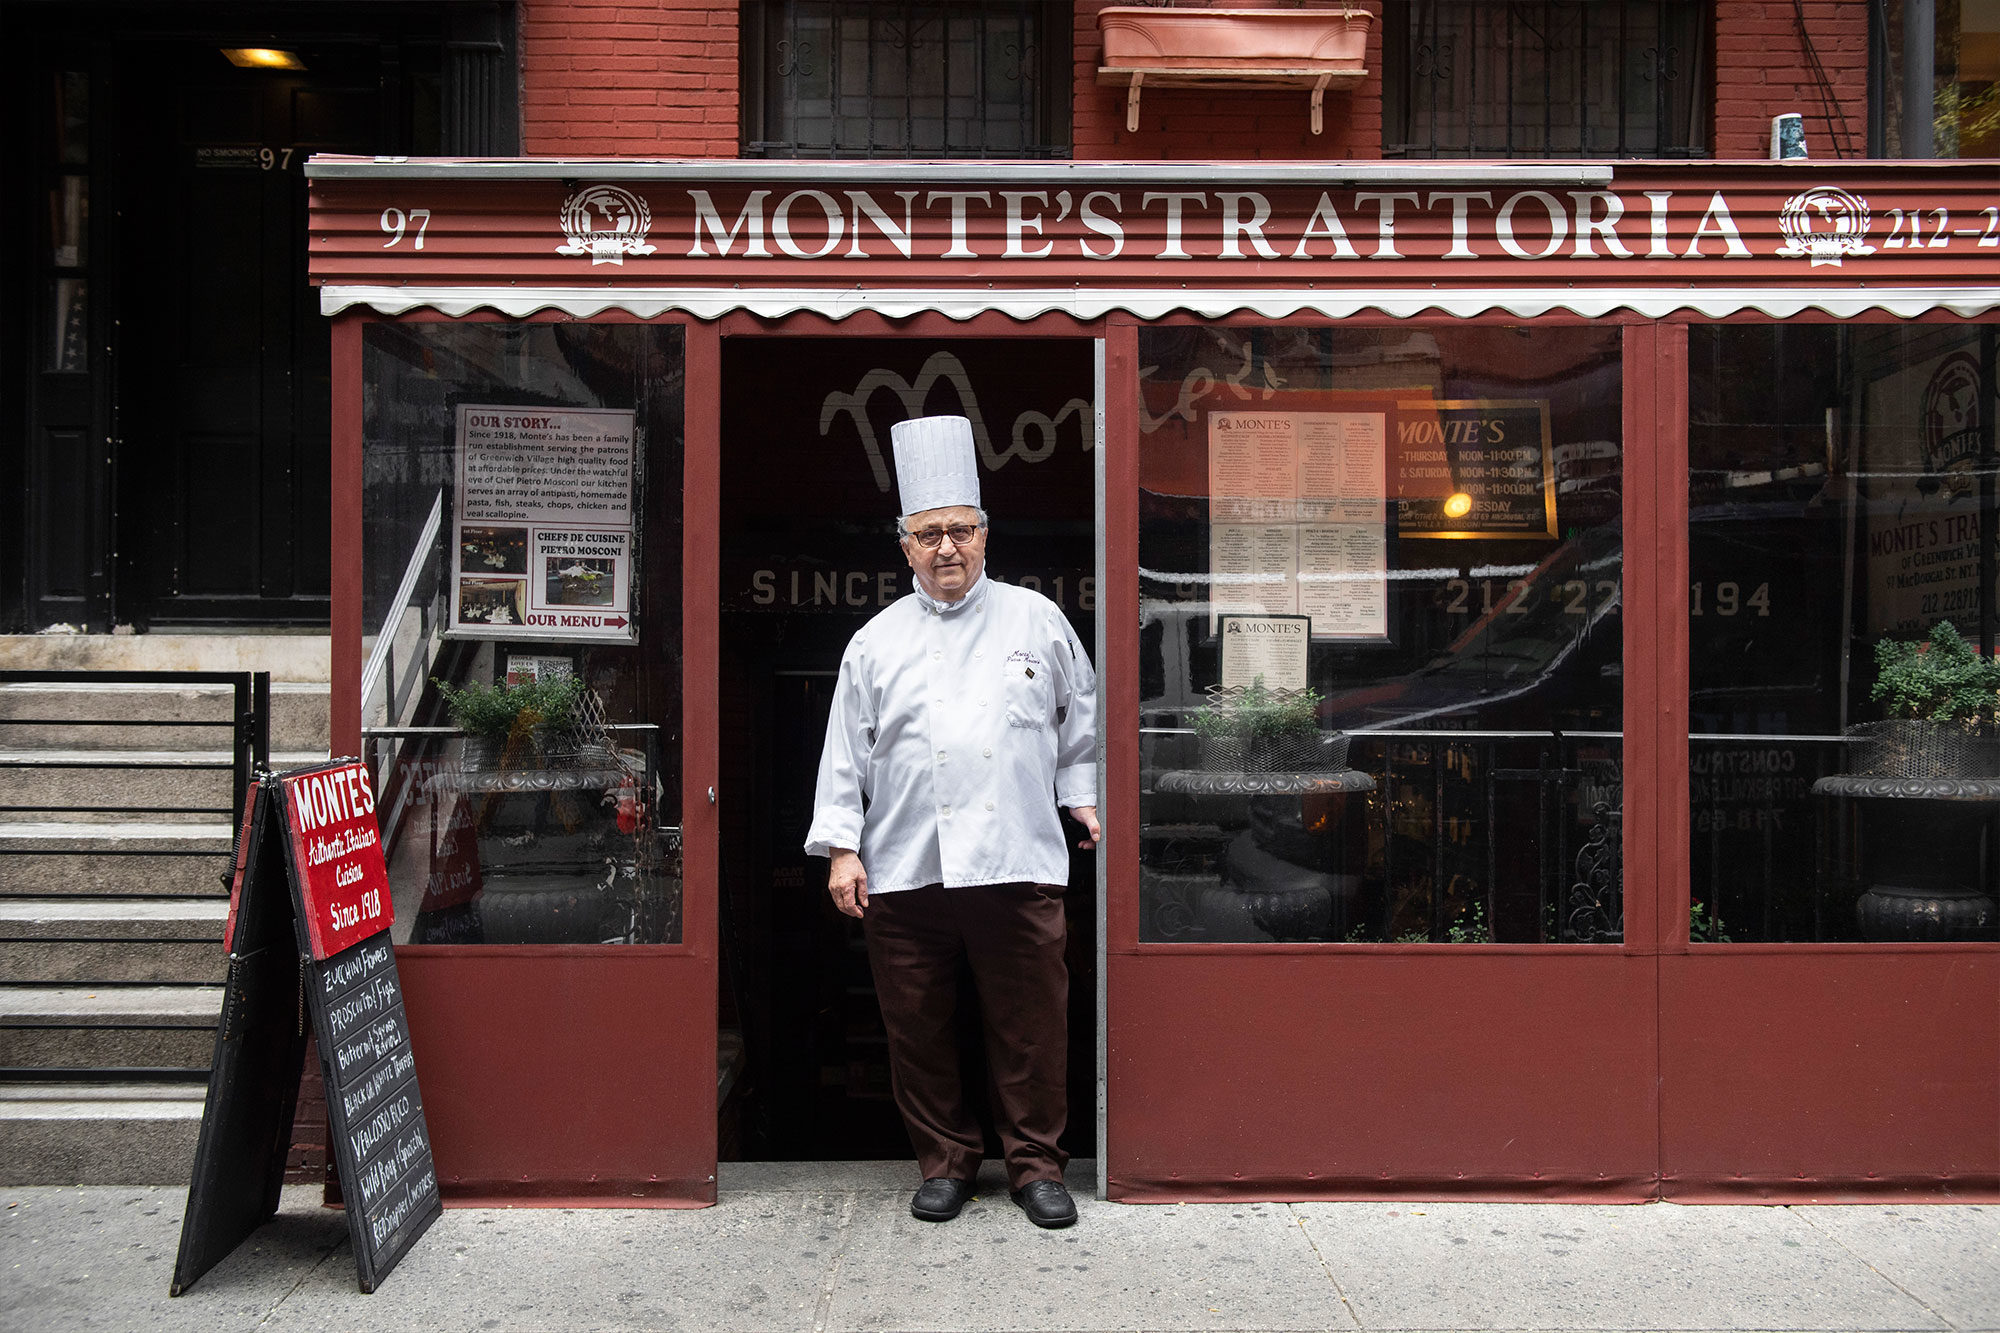 Article-Pietro-Mosconi-Montess-Trattoria-Italian-American-Restaurant-West-Village-NYC